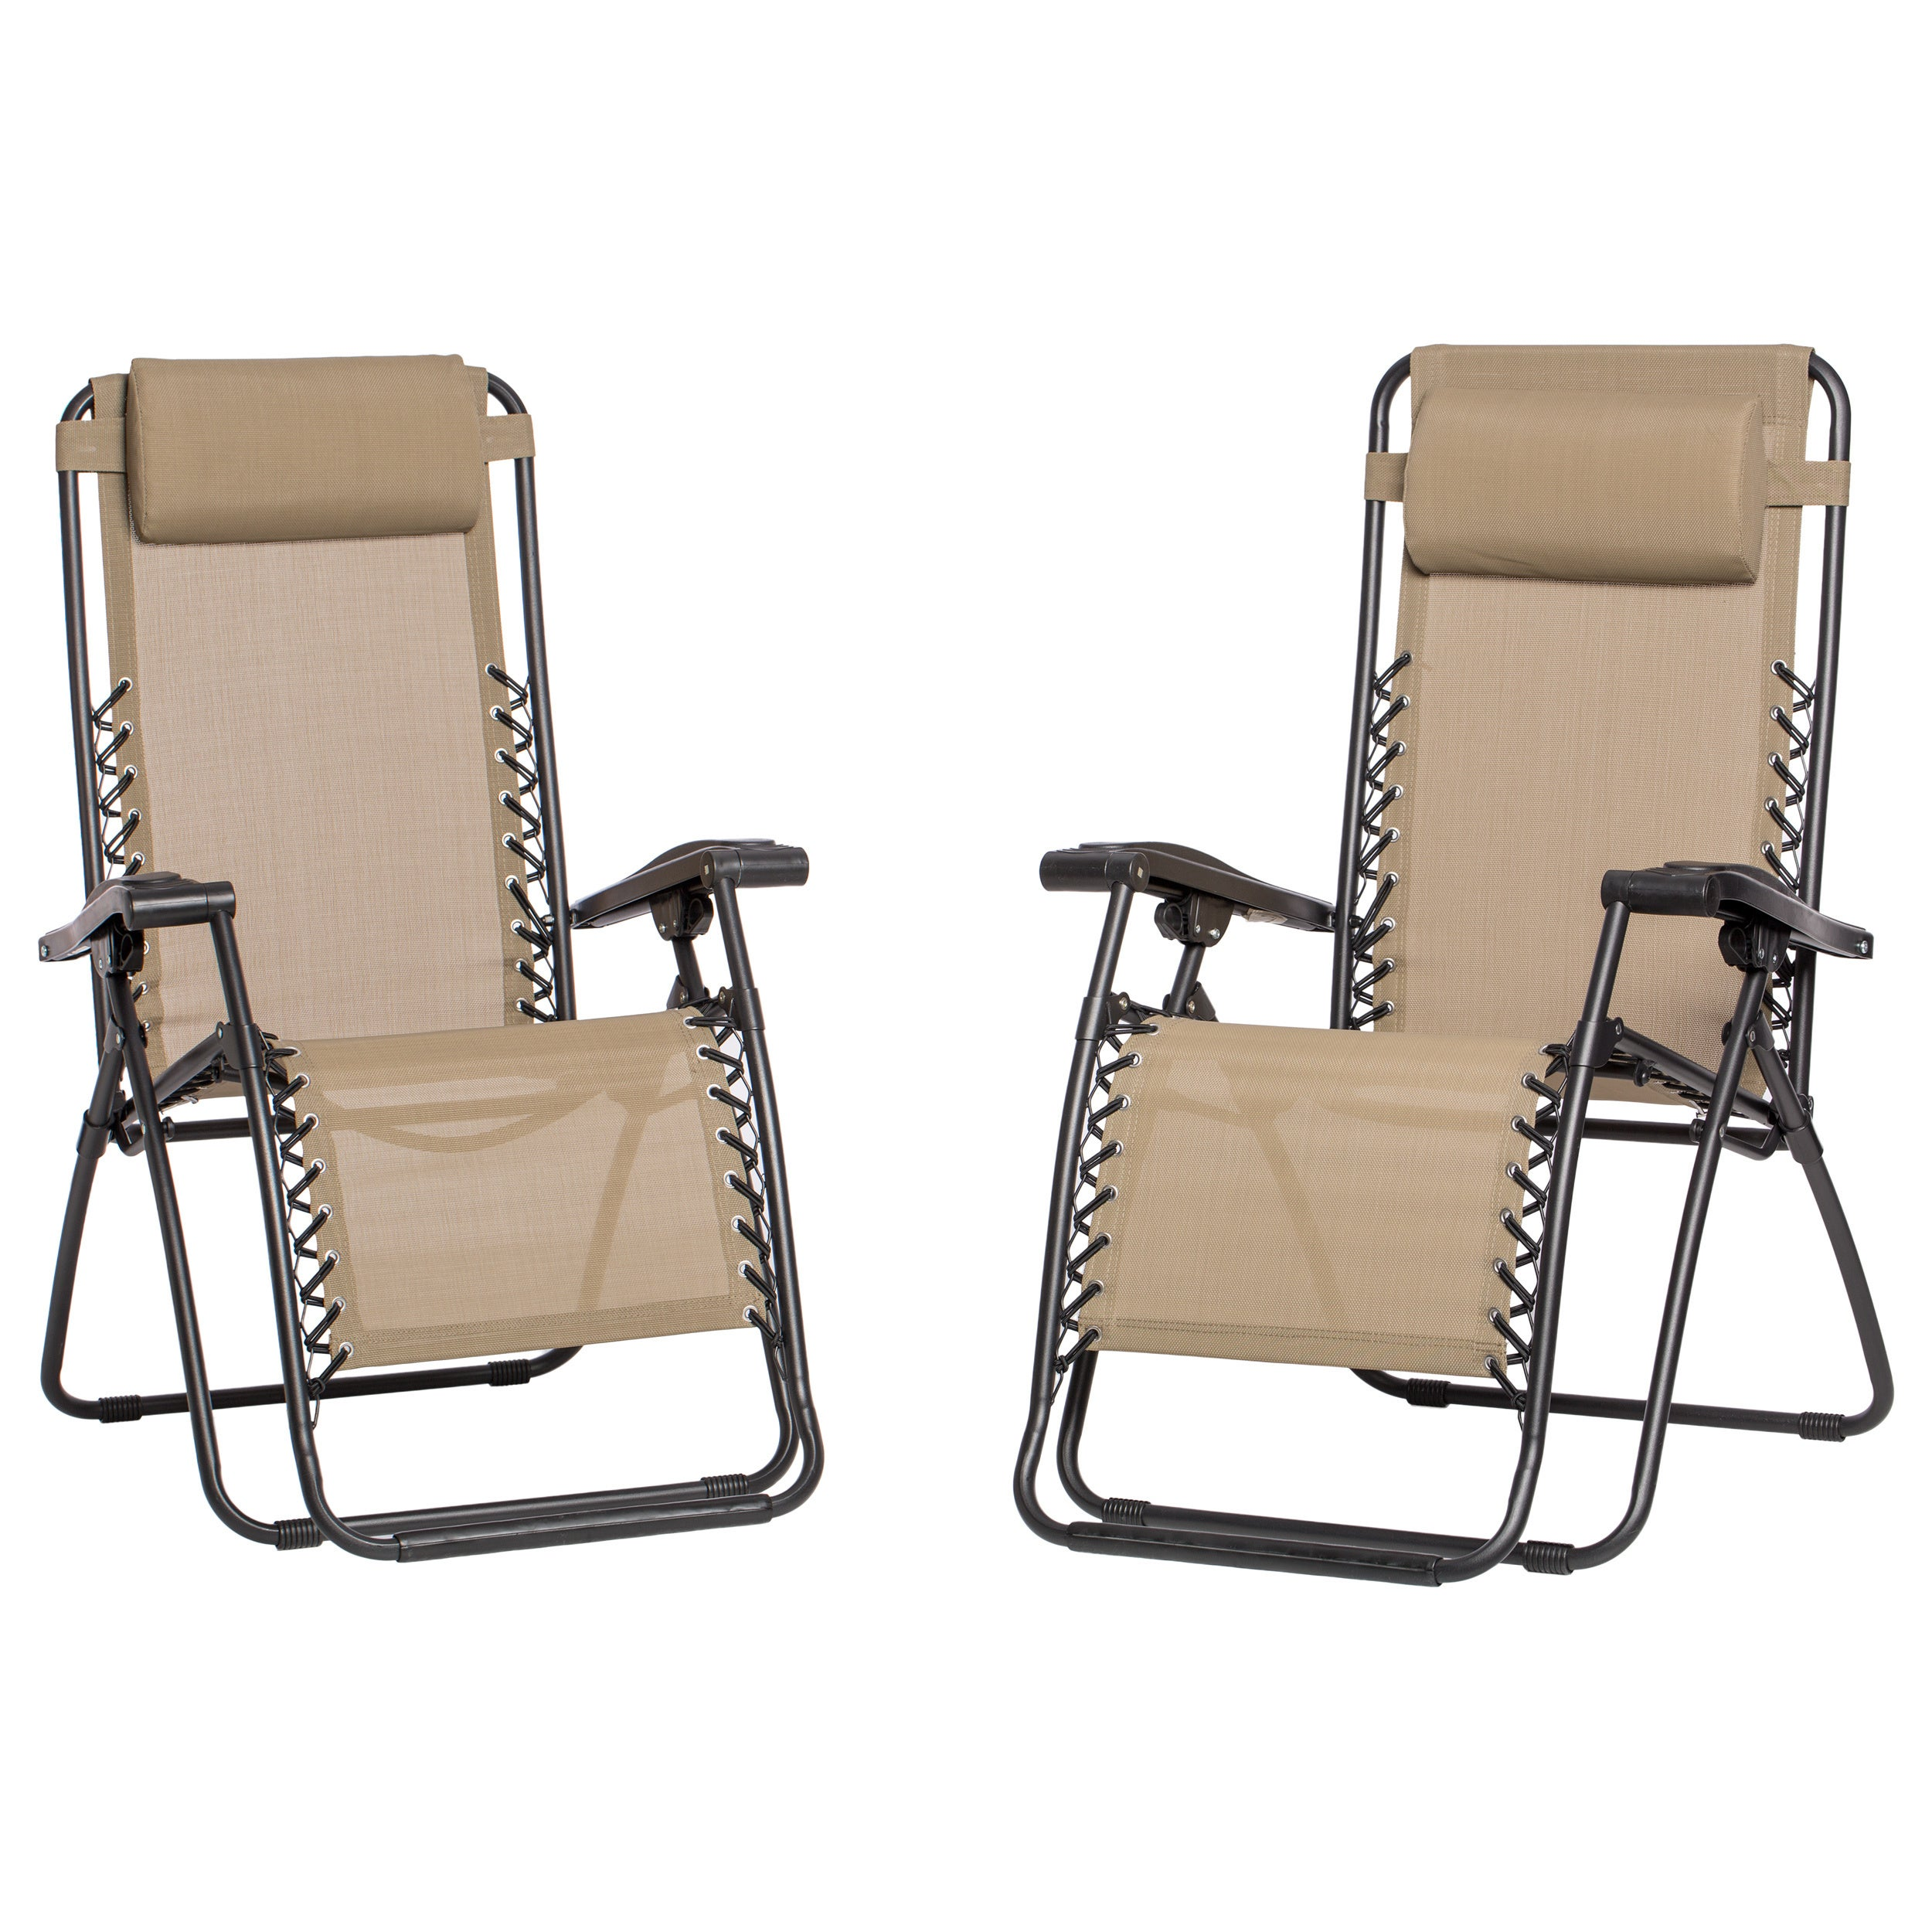 Caravan Canopy Beige Zero-Gravity Chairs (Set of 2) - Free Shipping Today - Overstock.com - 13137965  sc 1 st  Overstock.com & Caravan Canopy Beige Zero-Gravity Chairs (Set of 2) - Free ...